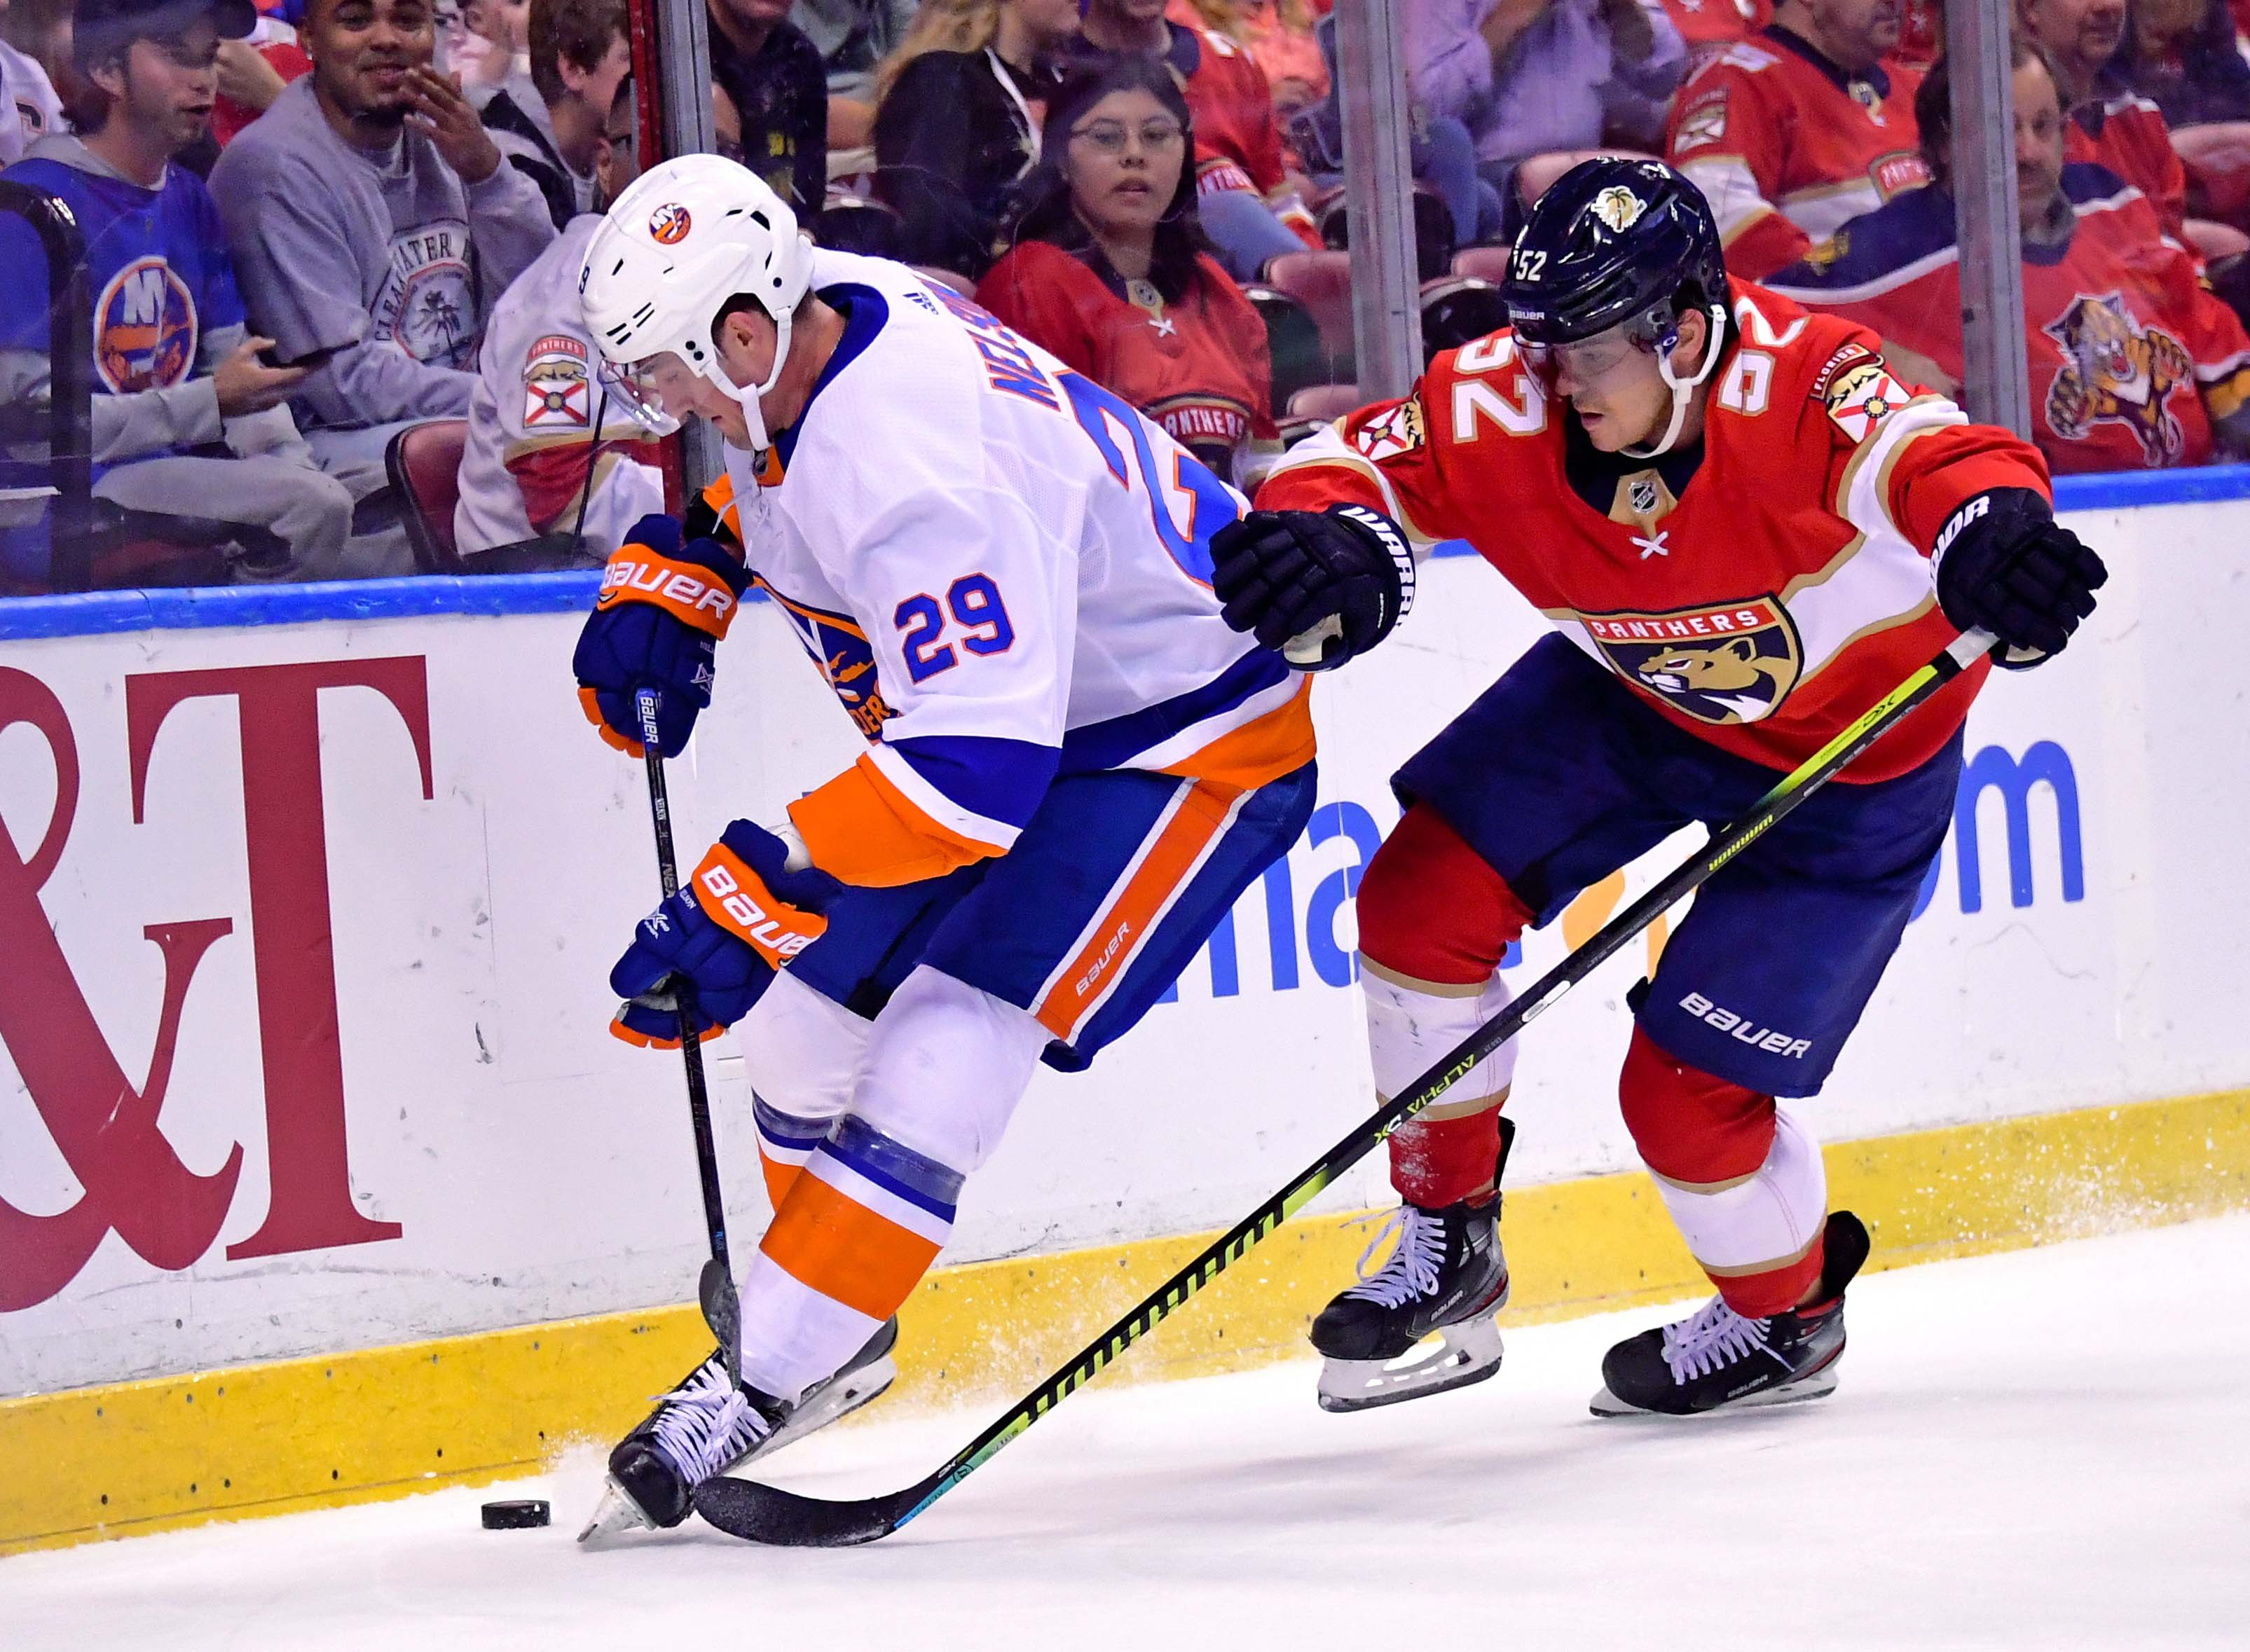 Islanders would face Panthers under proposed 24-team playoff format